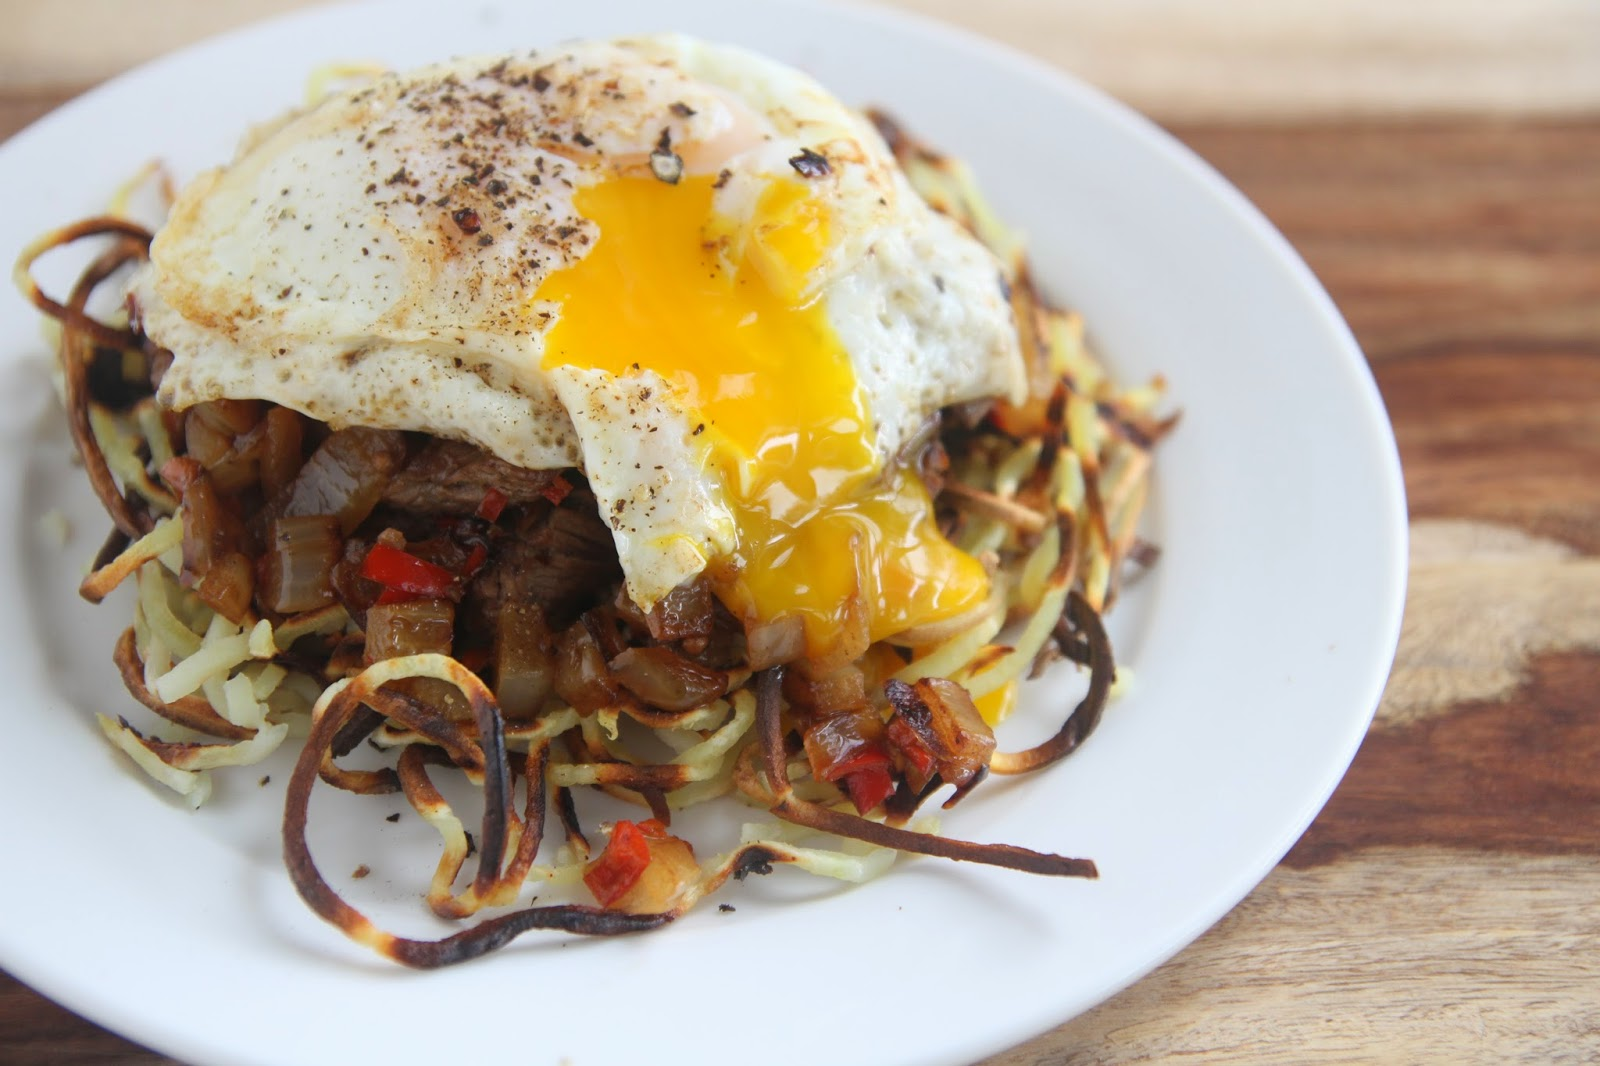 ... steak and eggs add some hashbrowns and whoa amazing so these steak